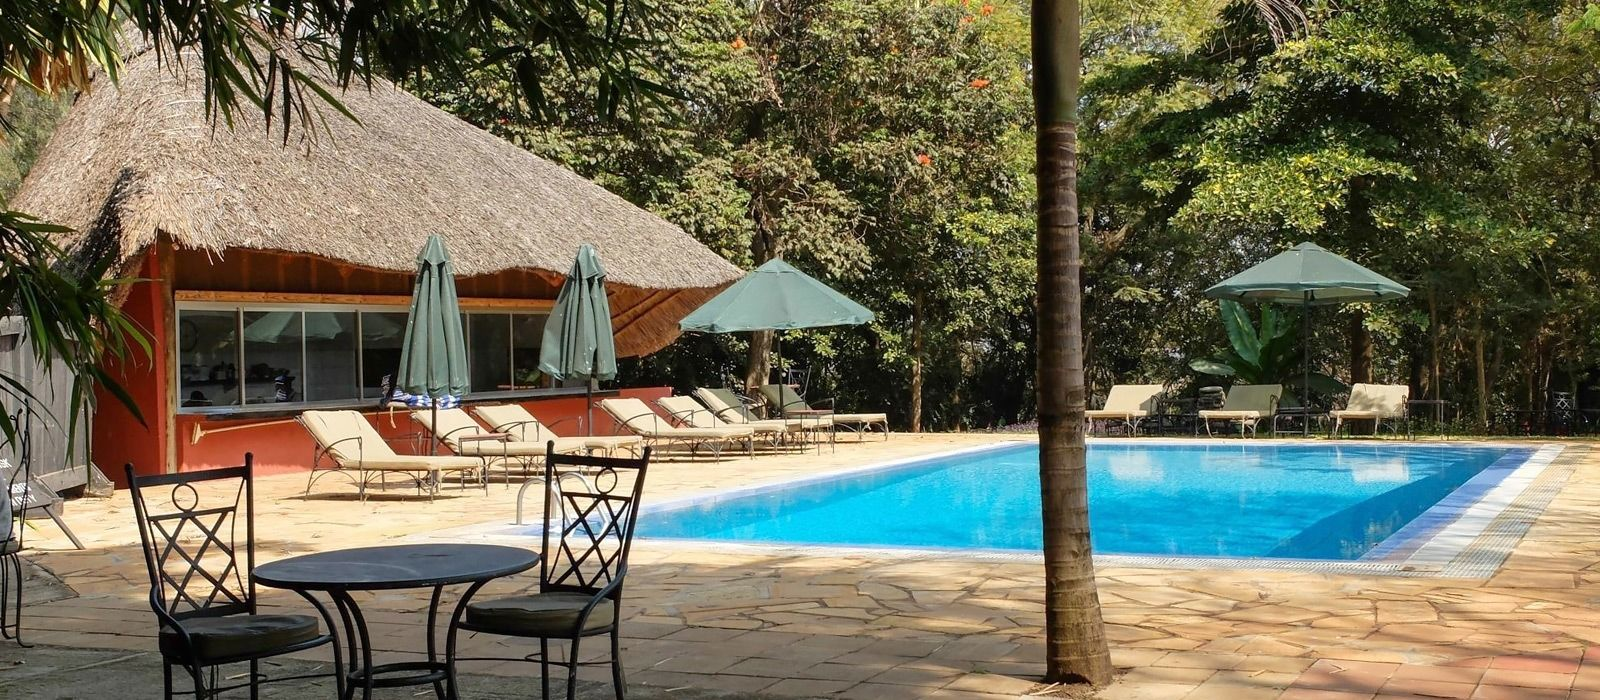 Hotel Ngorongoro Farm House